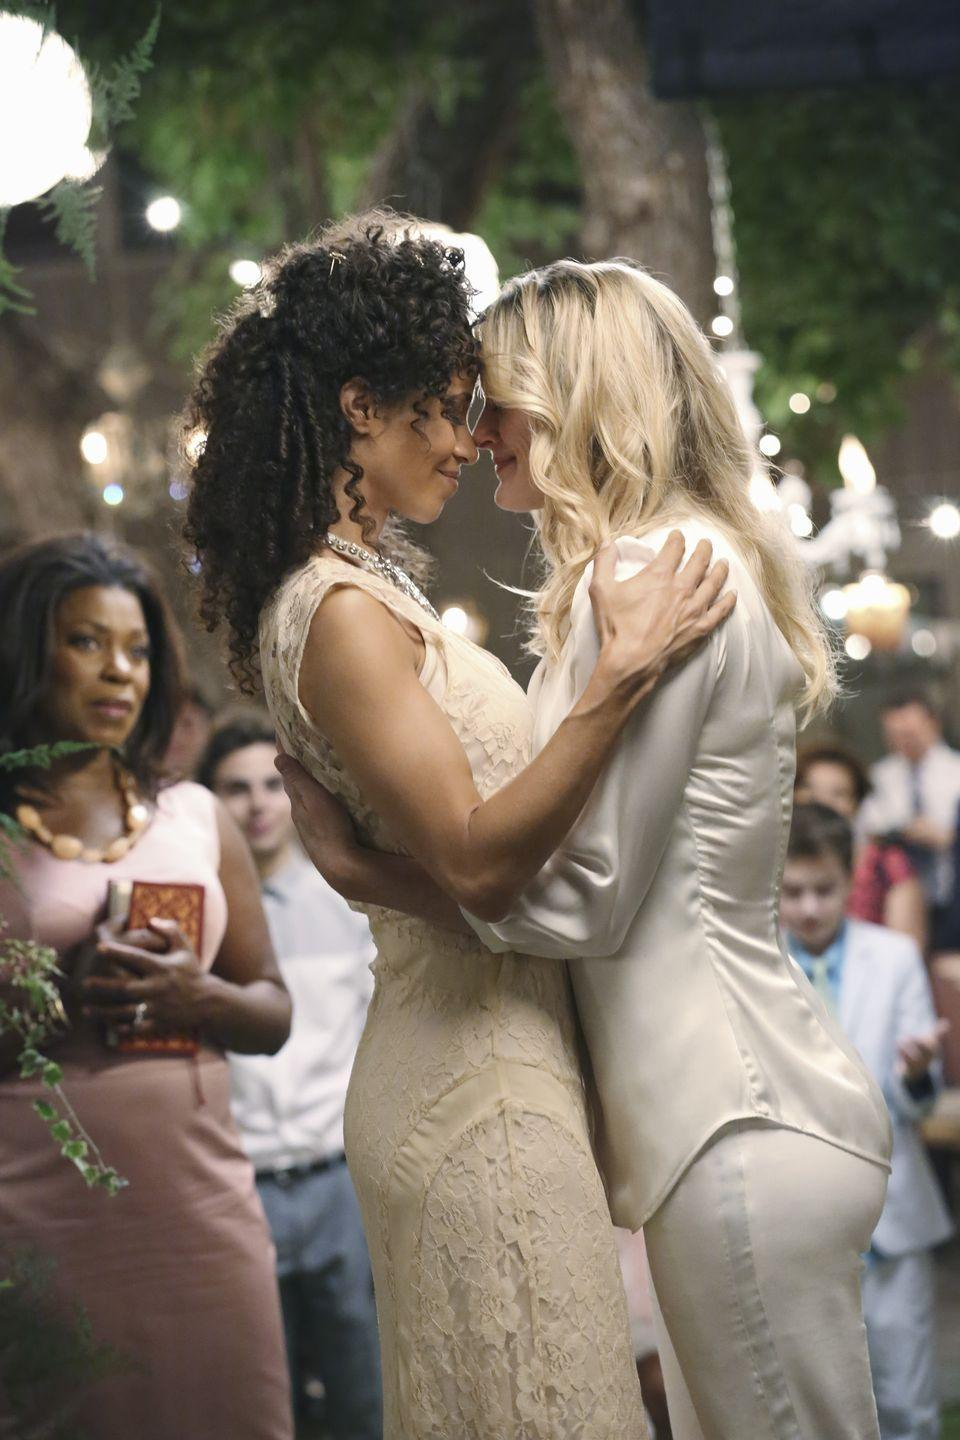 """<p>The season finale of ABC's <em>The Fosters</em> was the first show to feature a same-sex wedding since the overturning of DOMA, the Defense of Marriage Act. On the episode, appropriately named """"I do,"""" moms Stef and Lena tied the knot. According to <em>TV Guide</em>, who interviewed the show's executive producers, the episode was written and planned long before the historic decisions on Prop 8 and DOMA were made by the Supreme Court. </p><p>""""We knew the Supreme Court would likely make its decision before we shot [the episode],"""" <a href=""""https://www.tvguide.com/news/abc-familys-fosters-gay-wedding-1068890/#:~:text=ABC%20Family's%20The%20Fosters%20makes,landmark%20ruling%20on%20gay%20marriage."""" rel=""""nofollow noopener"""" target=""""_blank"""" data-ylk=""""slk:Executive Producer Peter Paige told TV Guide"""" class=""""link rapid-noclick-resp"""">Executive Producer Peter Paige told <em>TV Guide</em></a> in 2013. """"If they had ruled the other way we would have still gone ahead—only with an f--k you wedding! But because the Court did rule the way it did, it was an even more resonant celebration.""""</p>"""